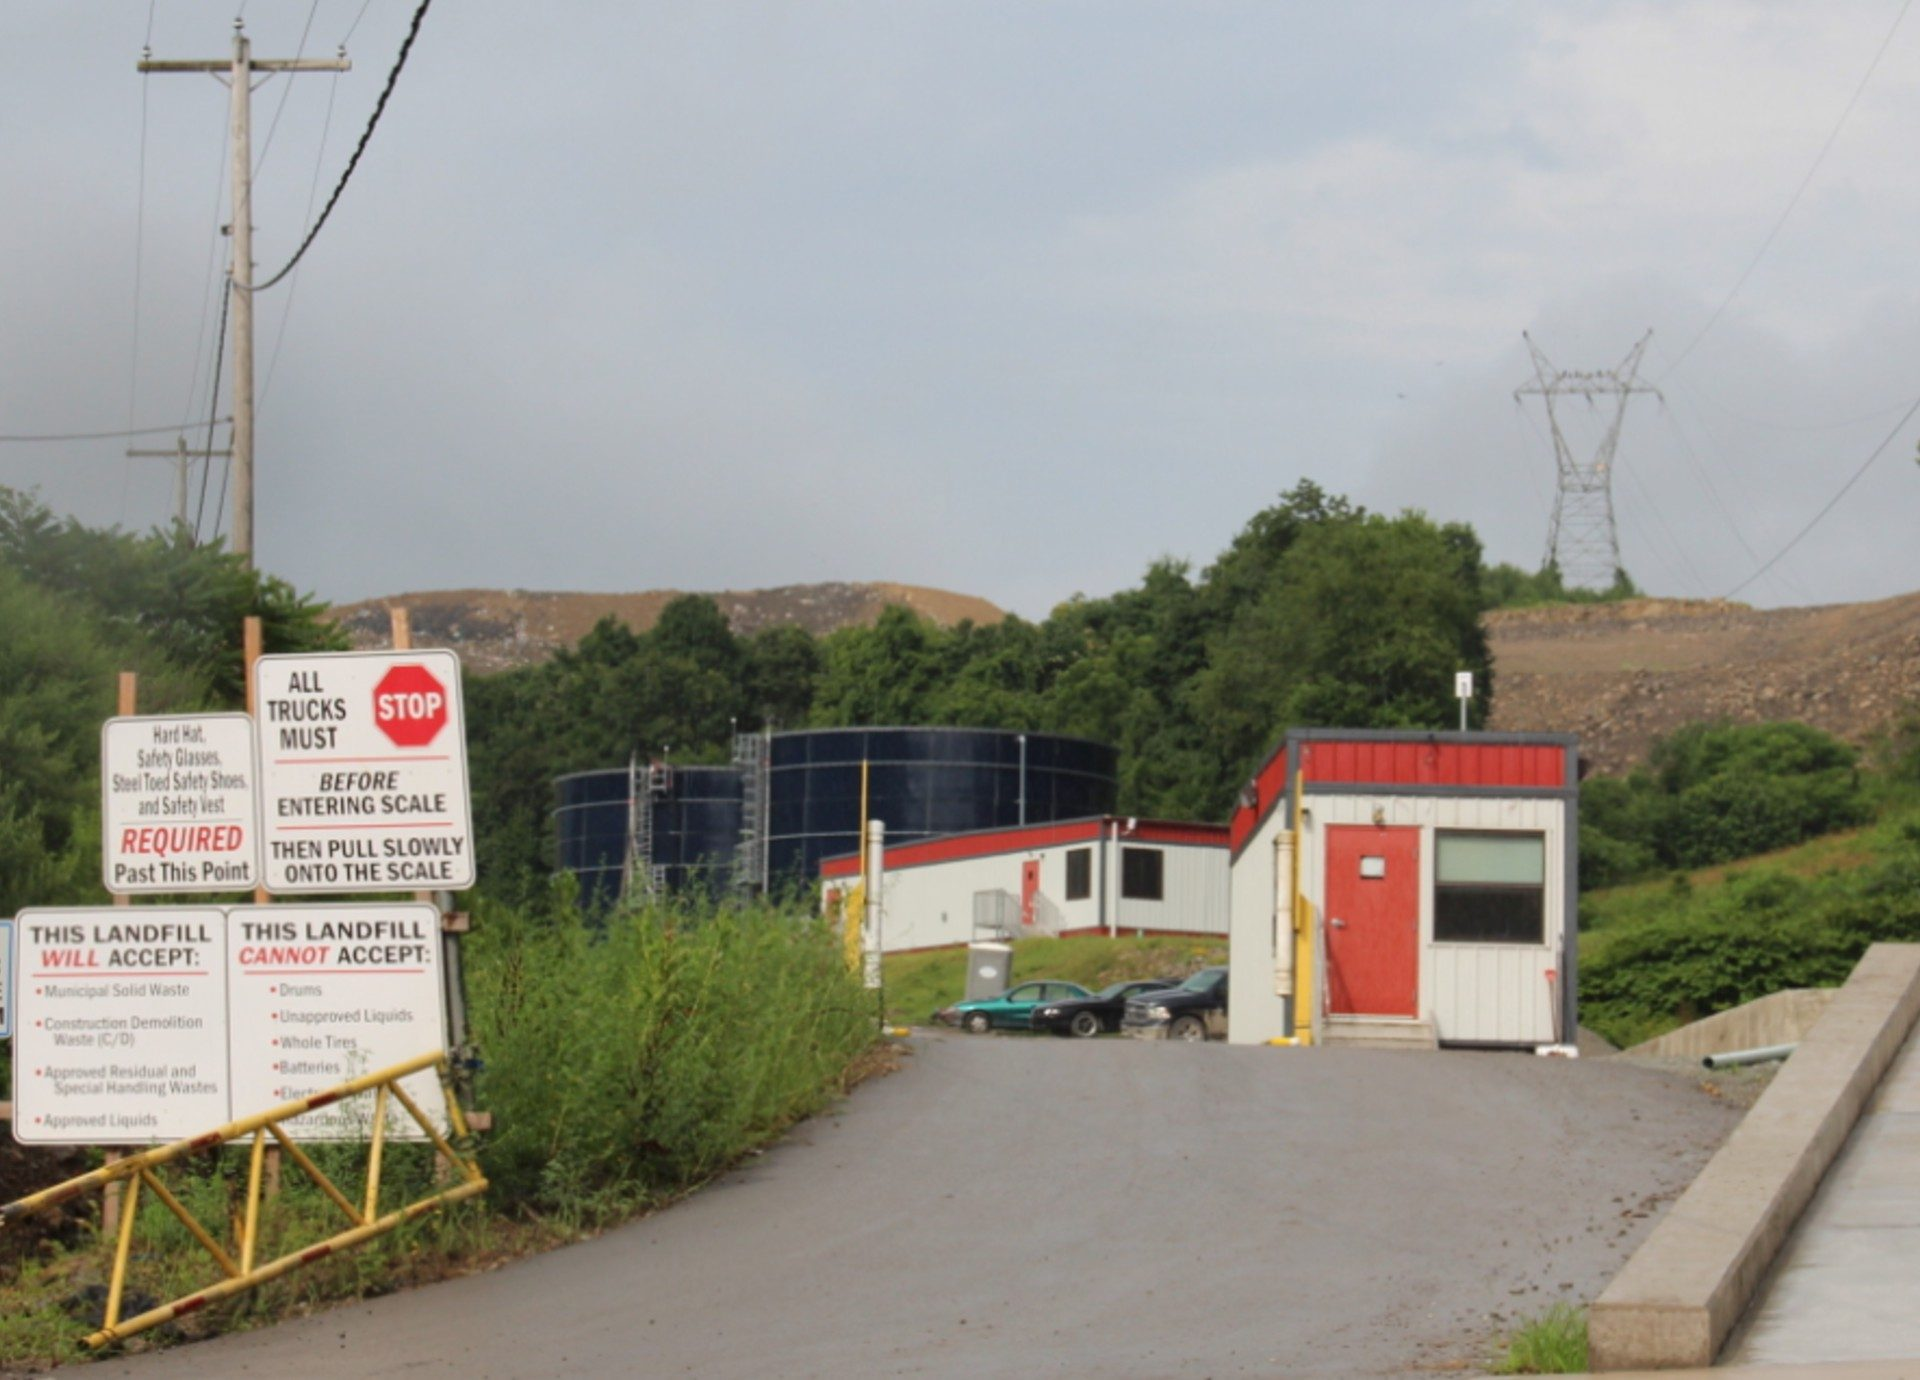 The entrance to the Westmoreland Sanitary Landfill in Rostraver, which accepts solid fracking waste and has sent what's called leachate -- liquid waste that comes out of the landfill when rainwater trickles through its piles of garbage -- to the Belle Vernon sewage treatment plant.